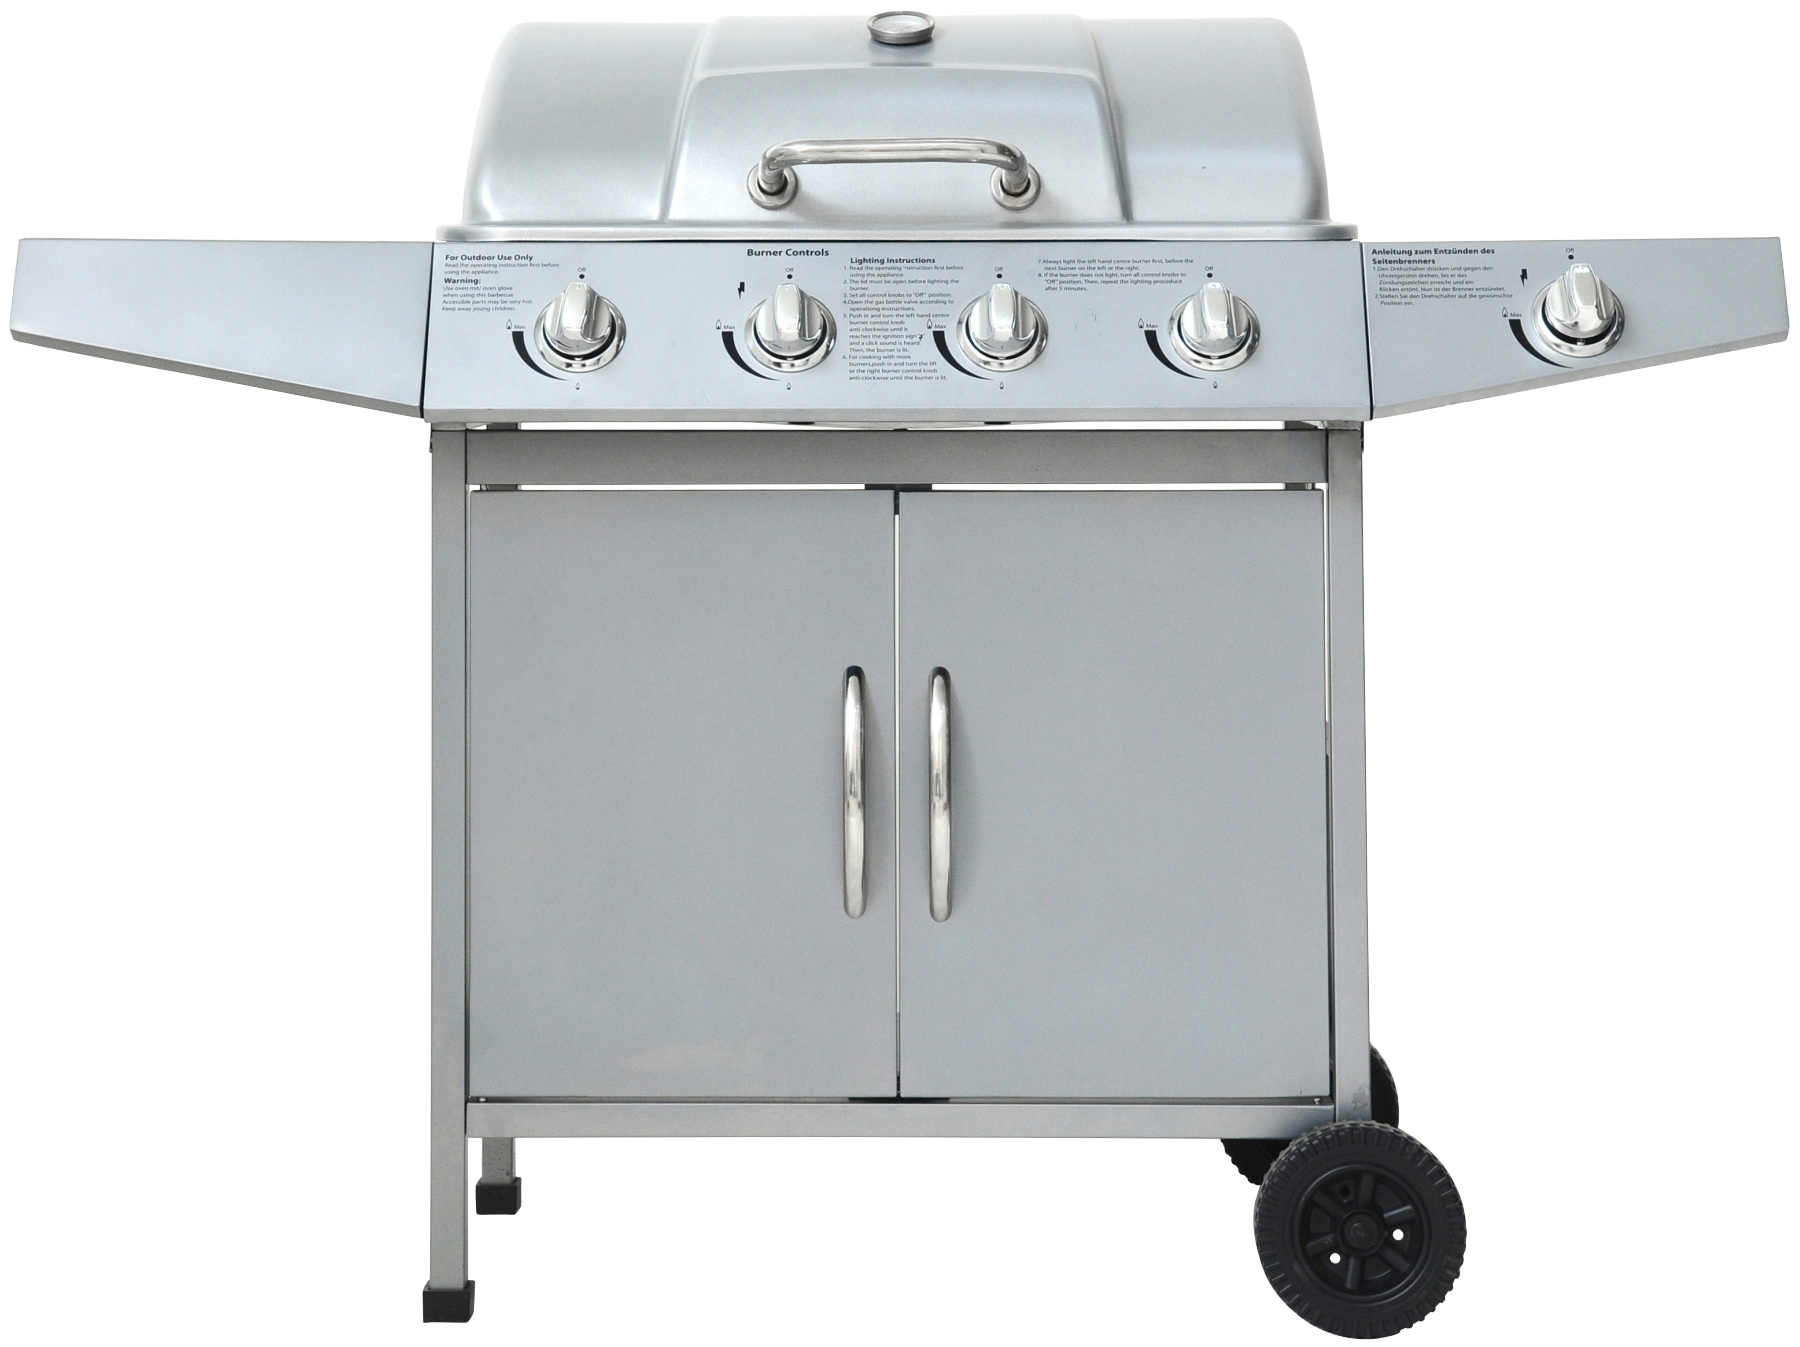 Enders Gasgrill Chicago 3 : Erfahrungsbericht enders kansas sikg turbo grillforum und bbq